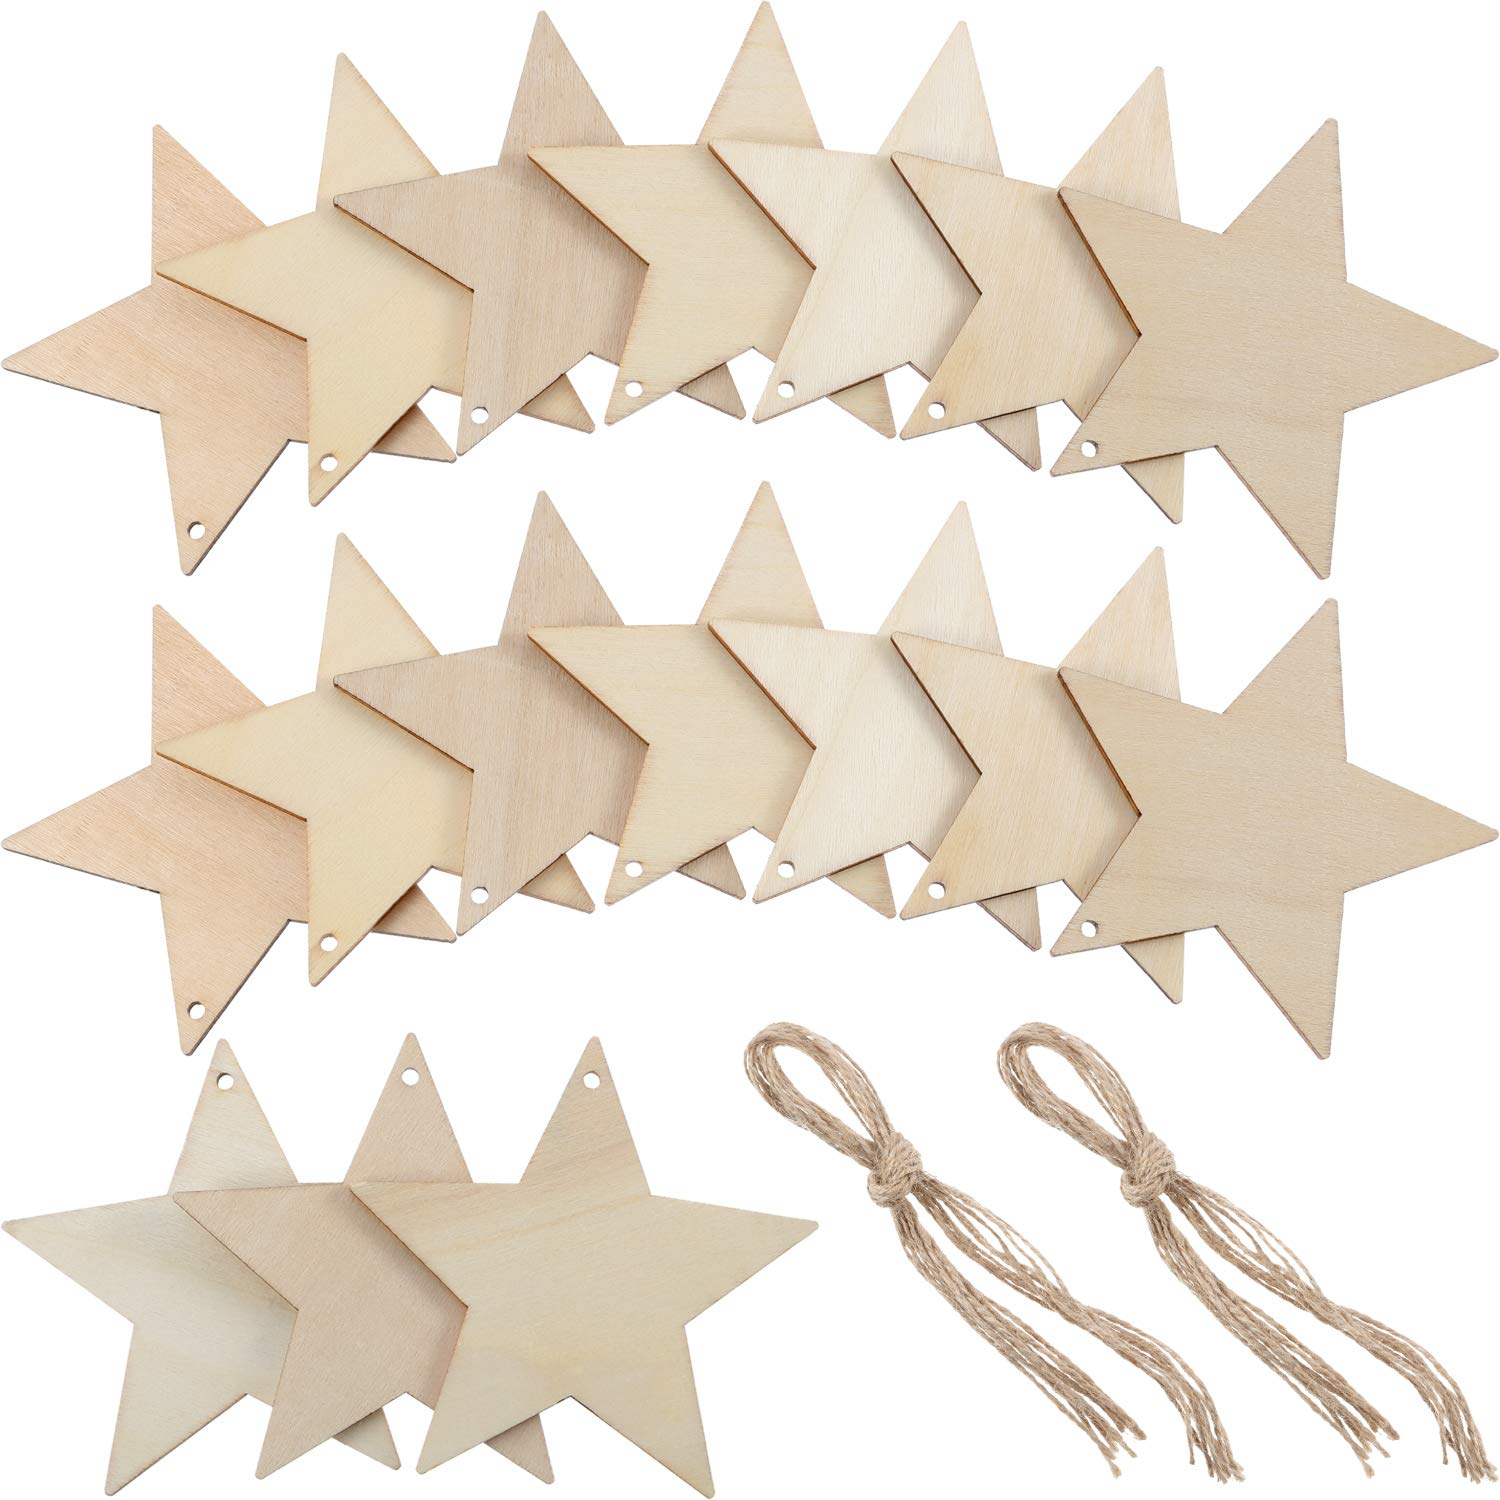 Tatuo 50 Pieces Wooden Star Cutouts Christmas Star Wooden Ornaments Hanging Ornaments with Ropes for Embellishments, Wedding, DIY, Craft, Festival